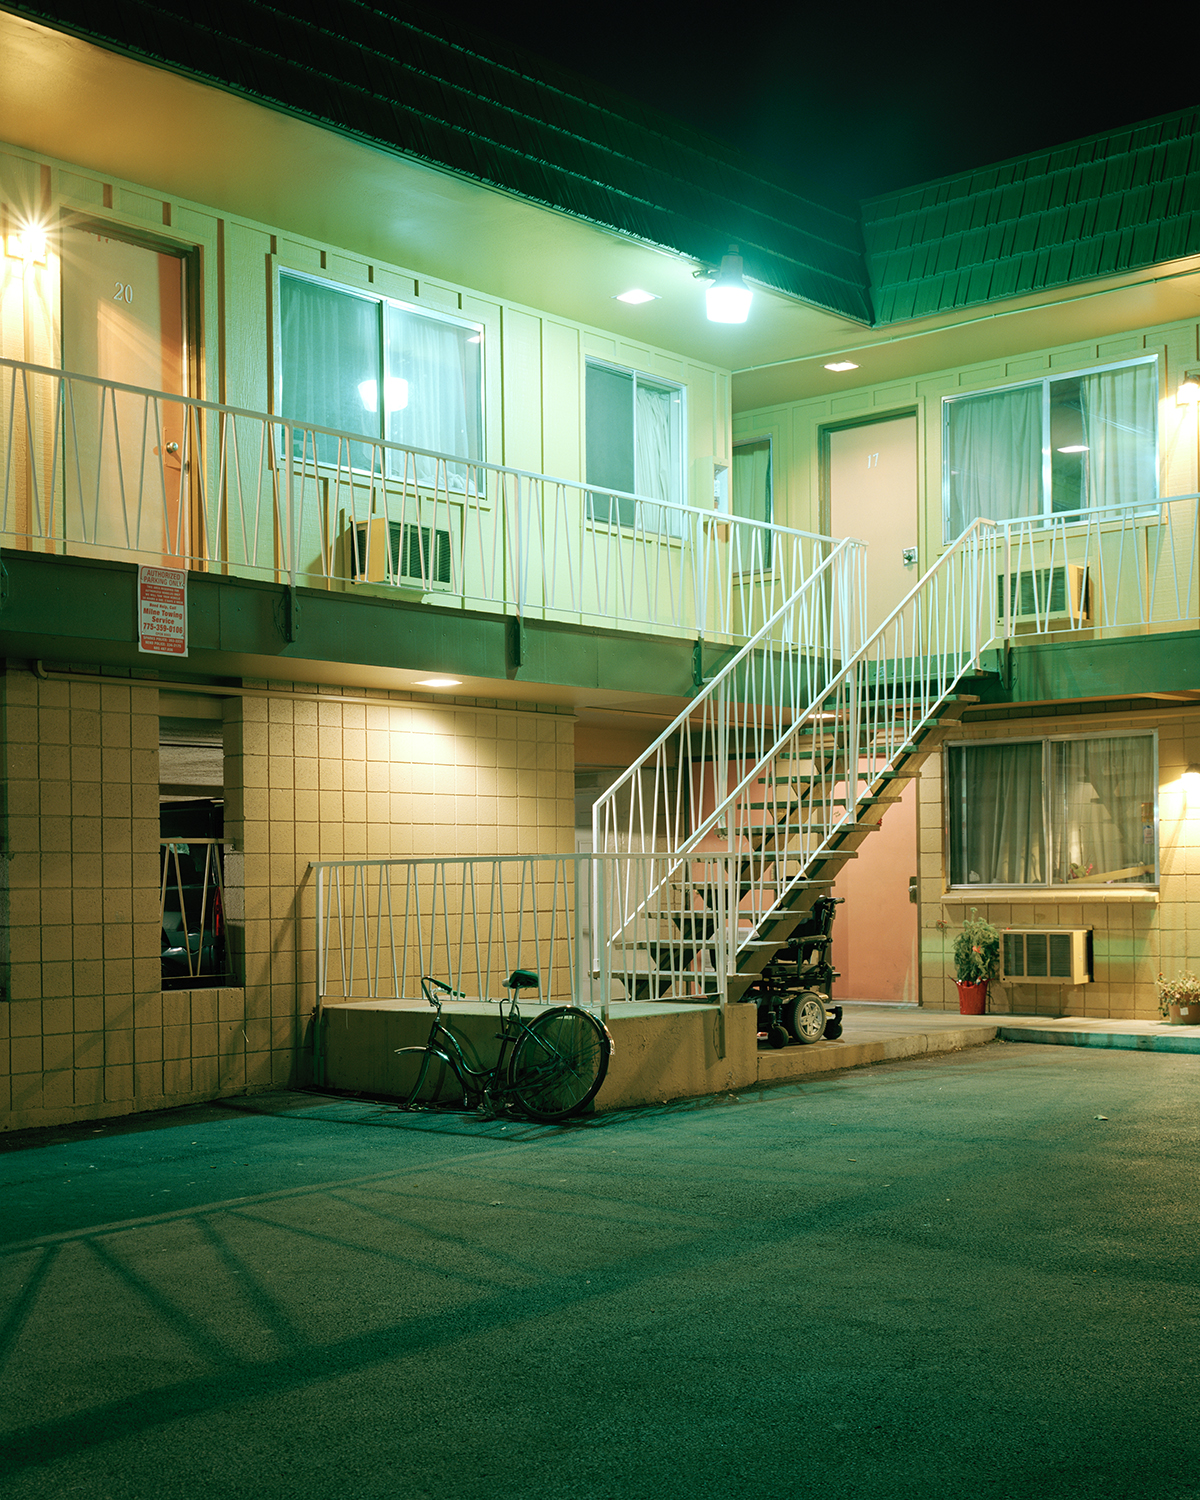 Reno Motel Green.jpg